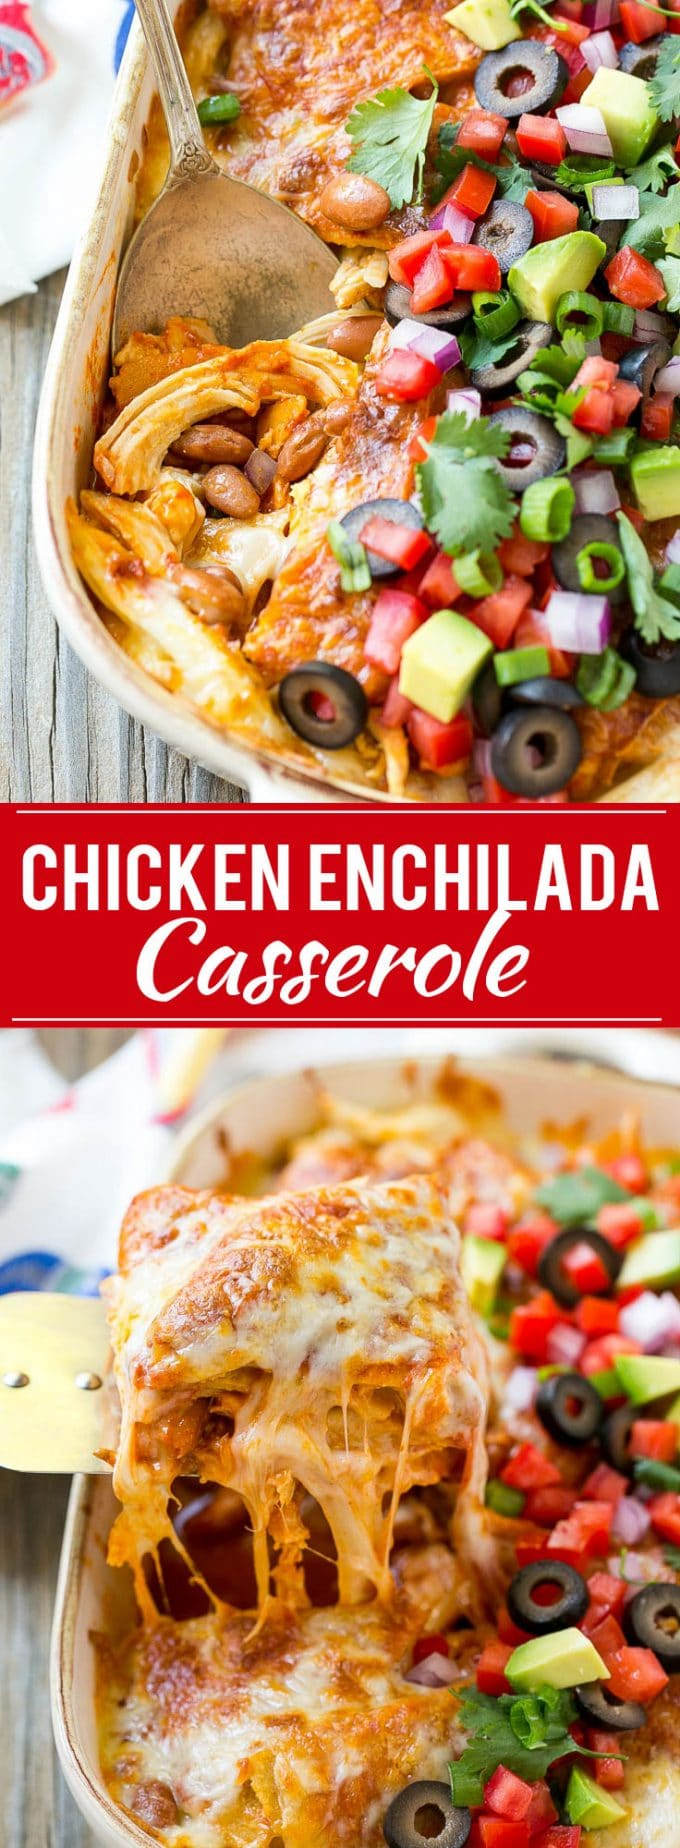 Chicken Enchilada Casserole Recipe | Chicken Enchiladas | Easy Casserole Recipe | Enchilada Casserole